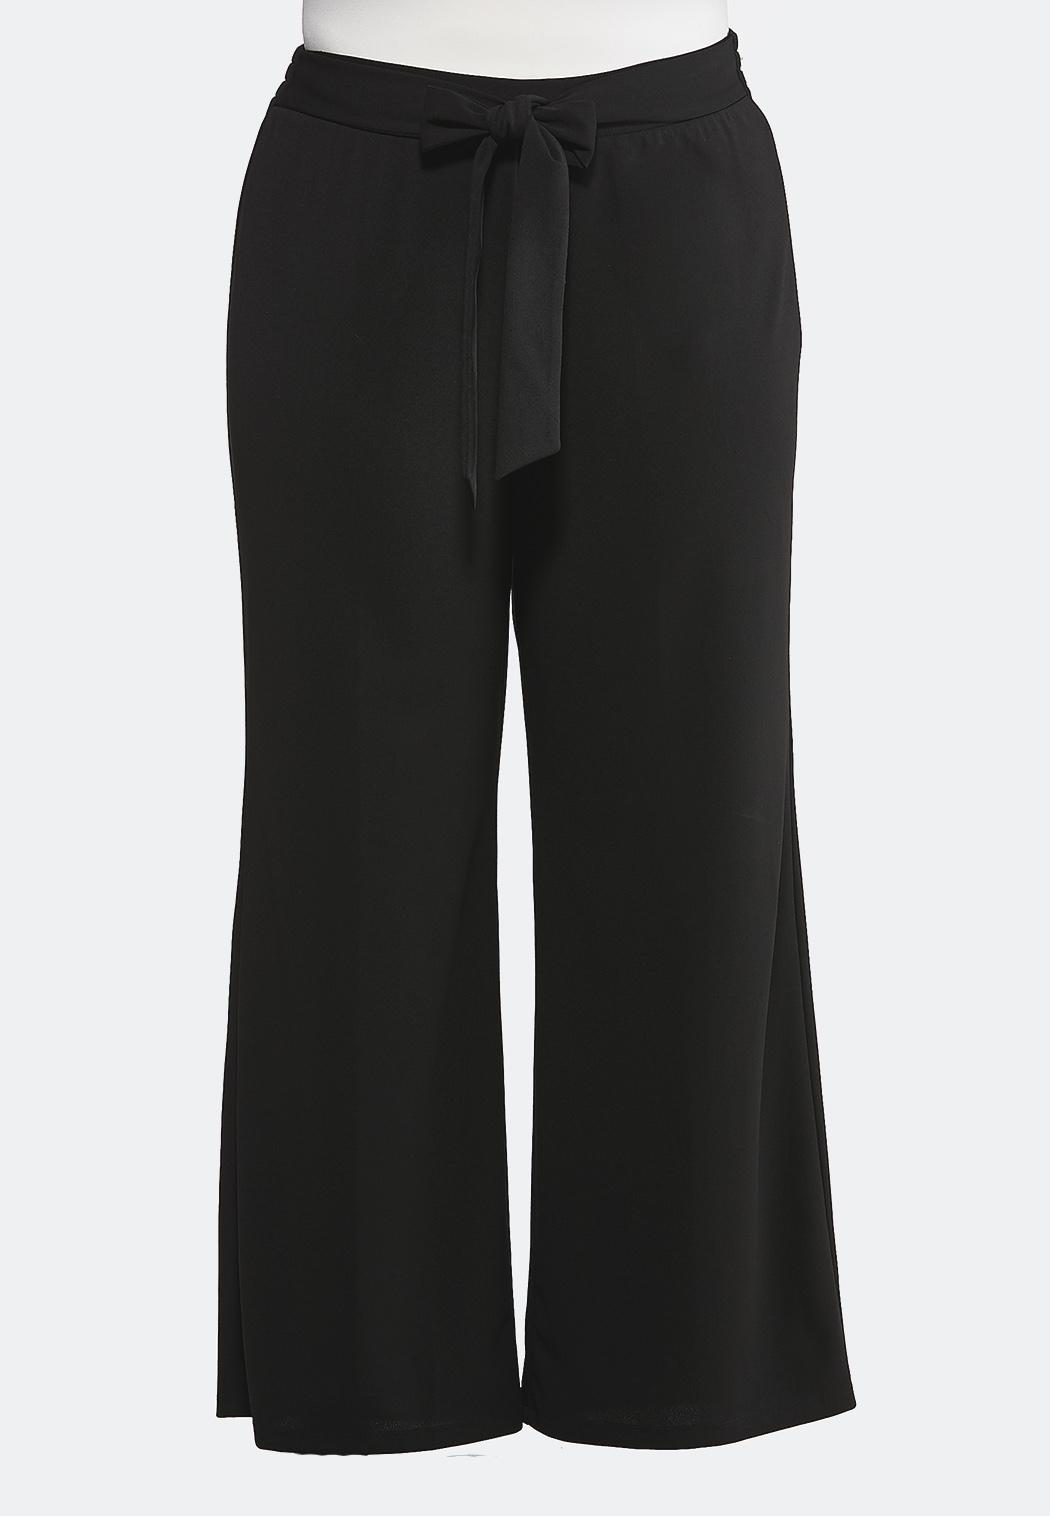 3db12b0316064 Women s Plus Size Pants